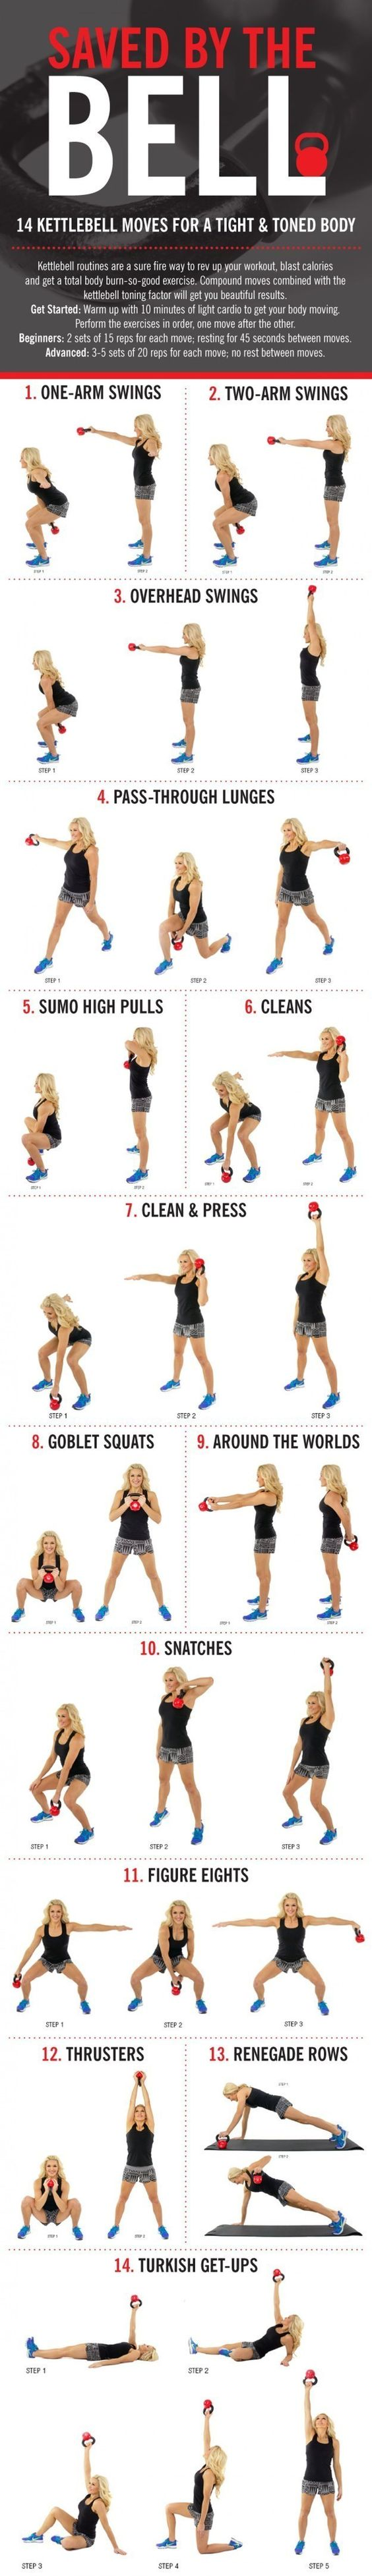 Or How To Work Your Whole Body With Just One Kettlebell Workouts Full Circuit Workout Weights Pinterest 19 Cheat Sheets For Every Kind Of